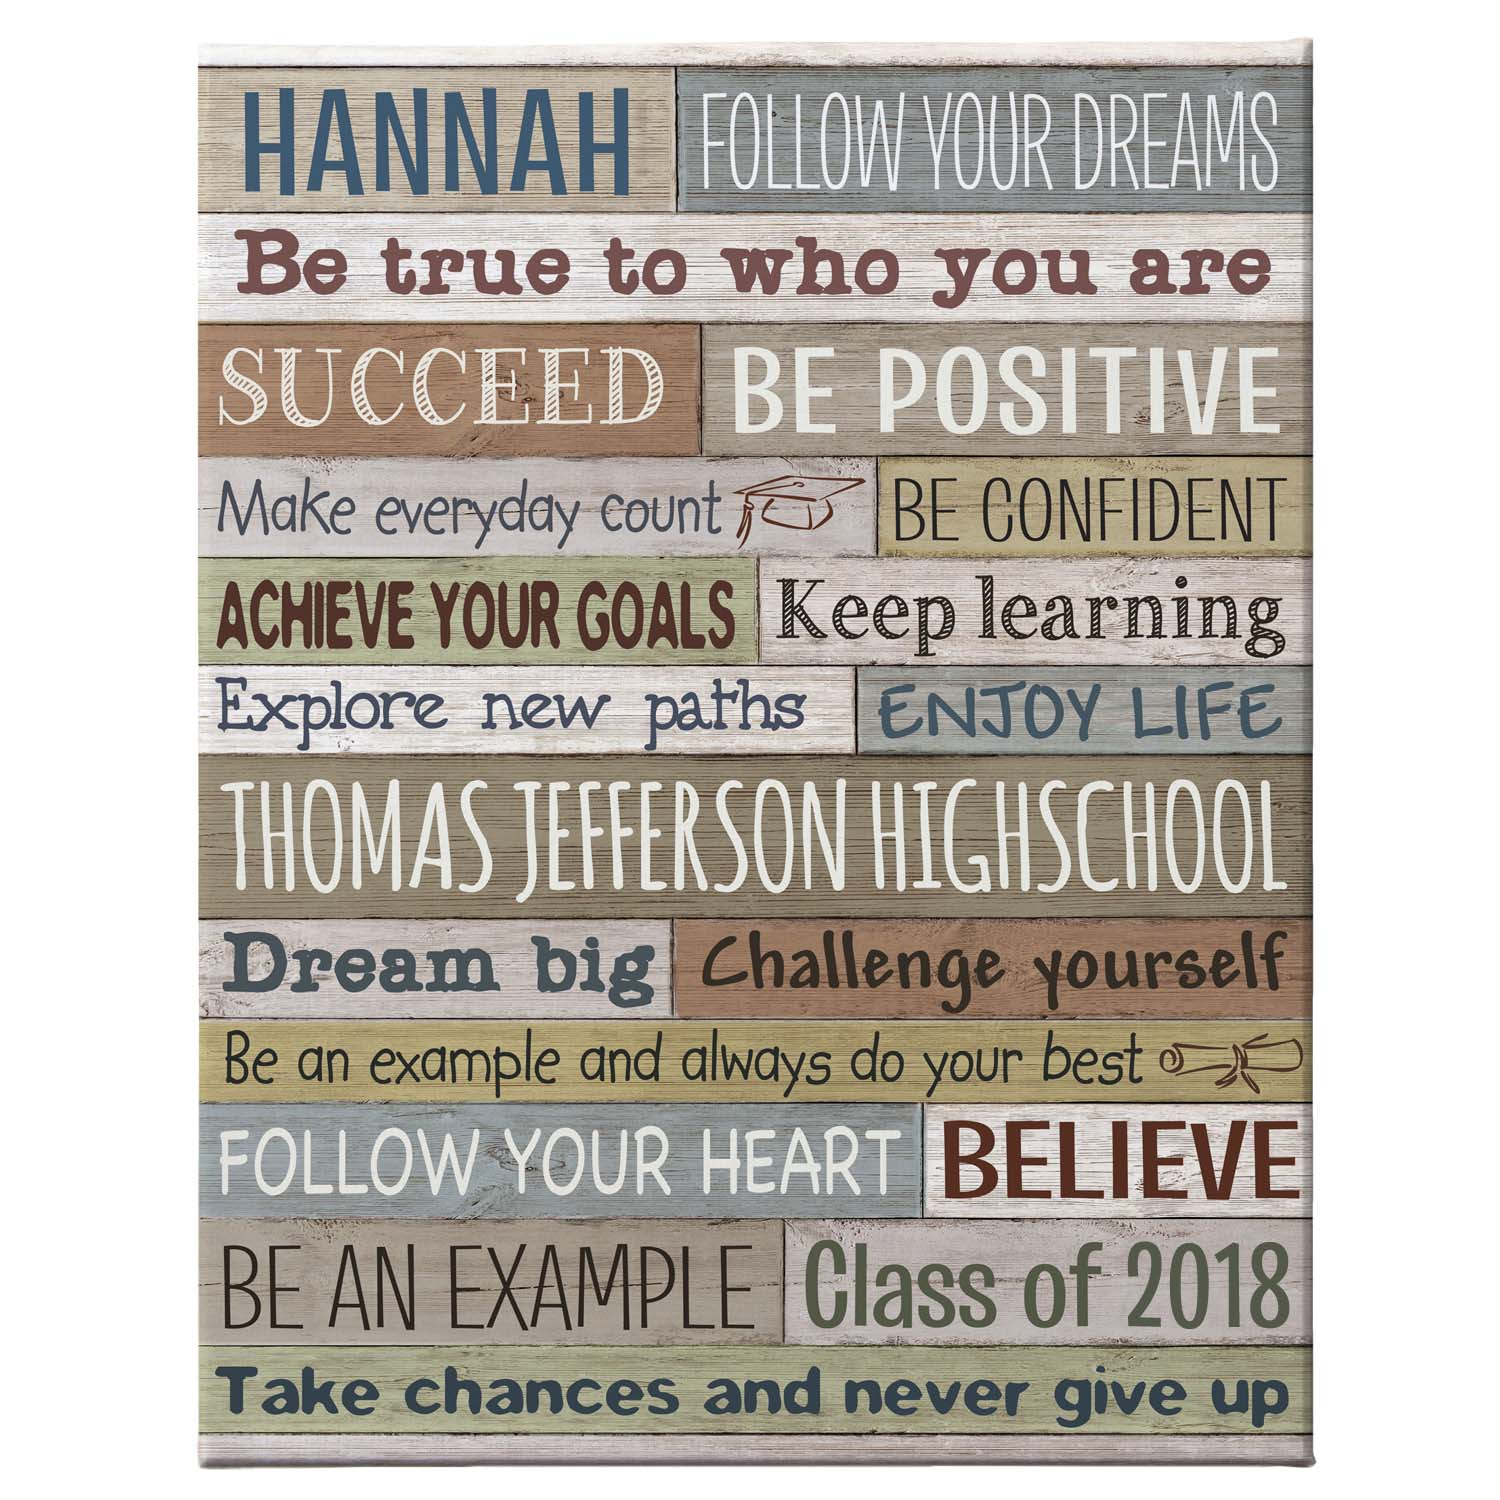 Personalized Words Of Wisdom Graduation Canvas, Available in 3 Sizes